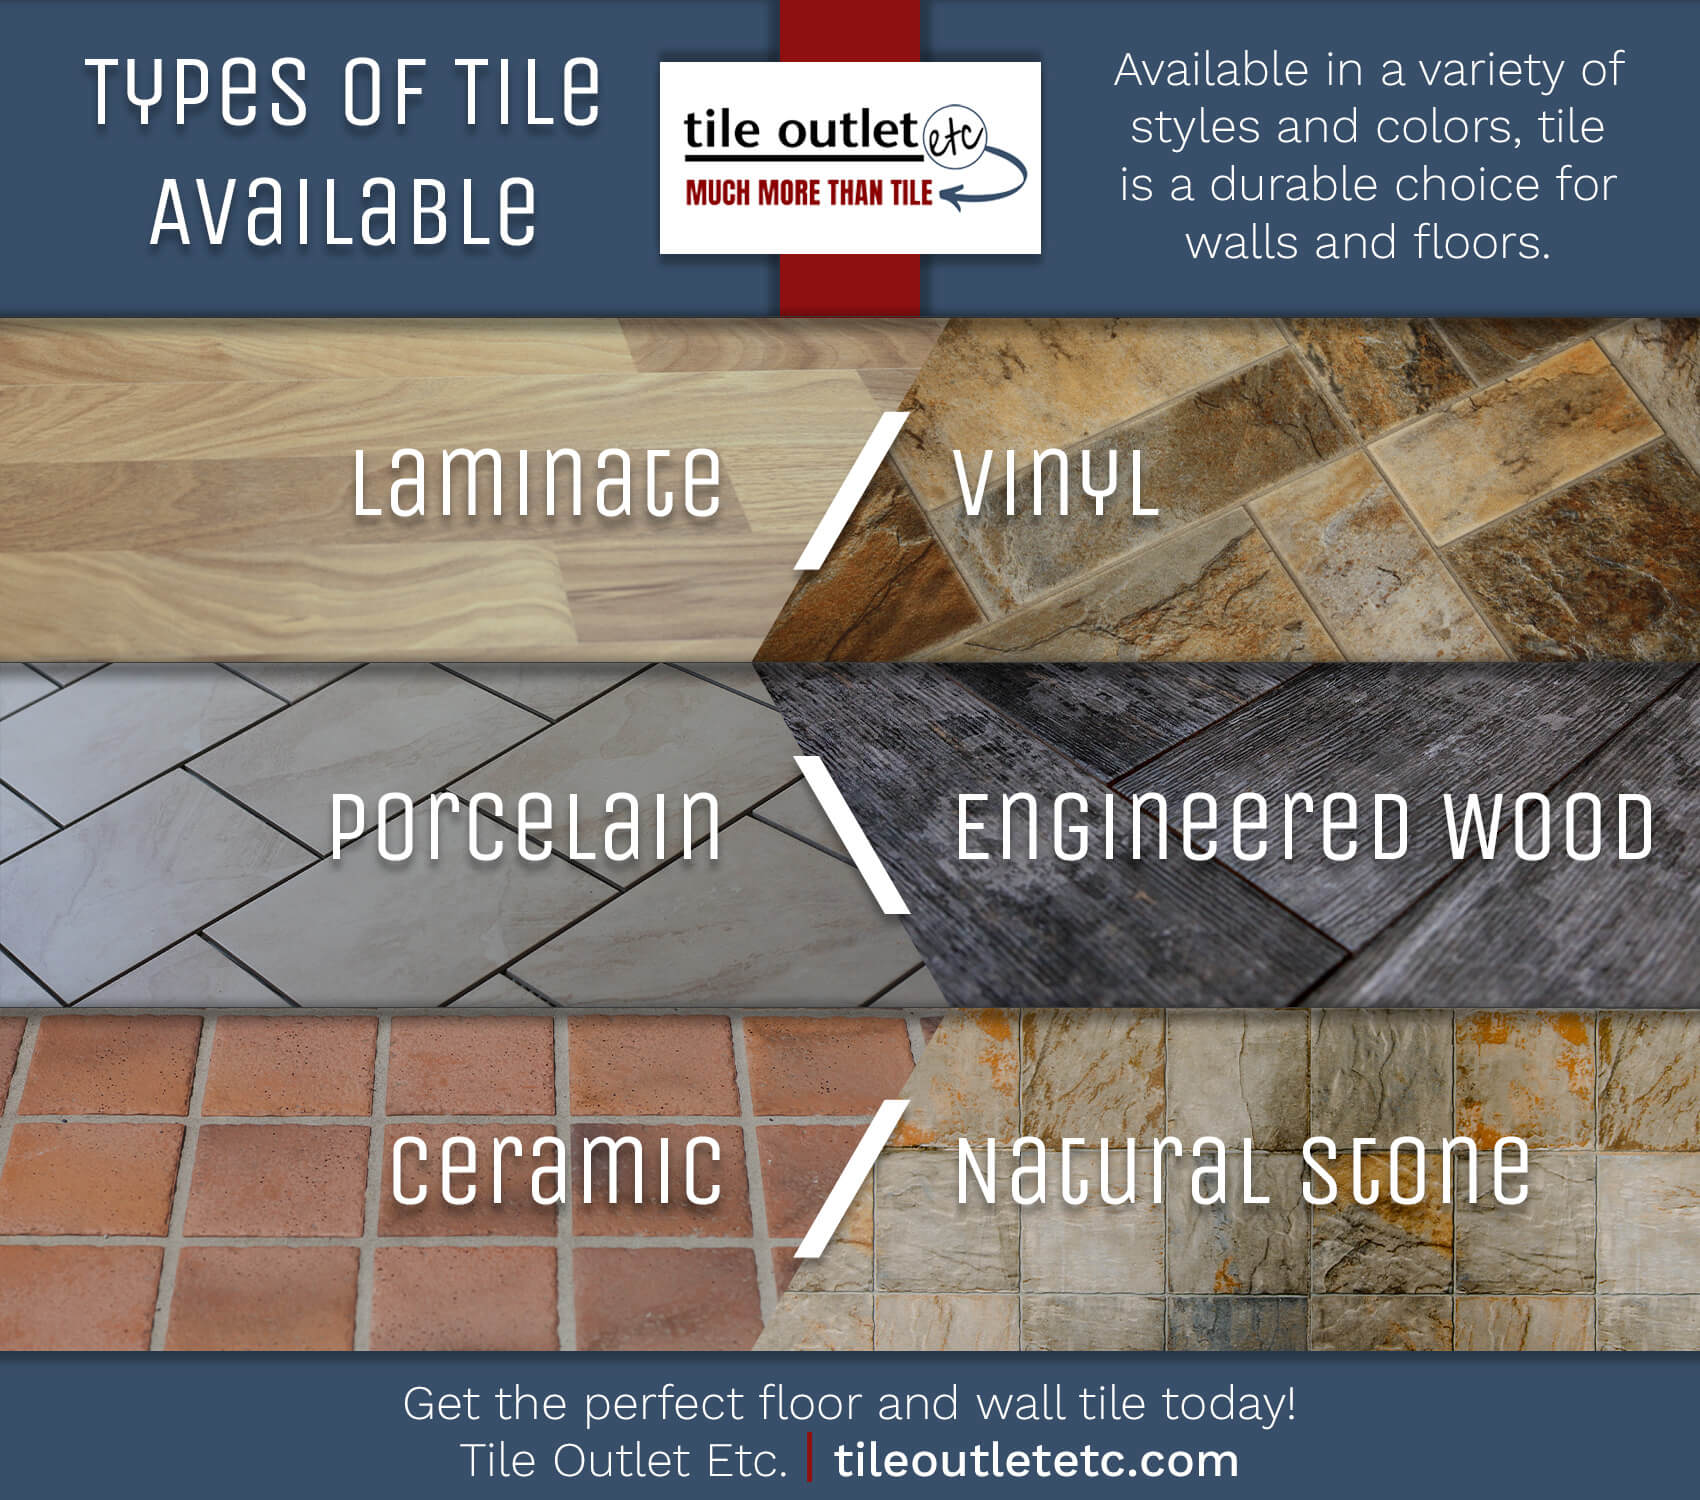 Types of Tile Available